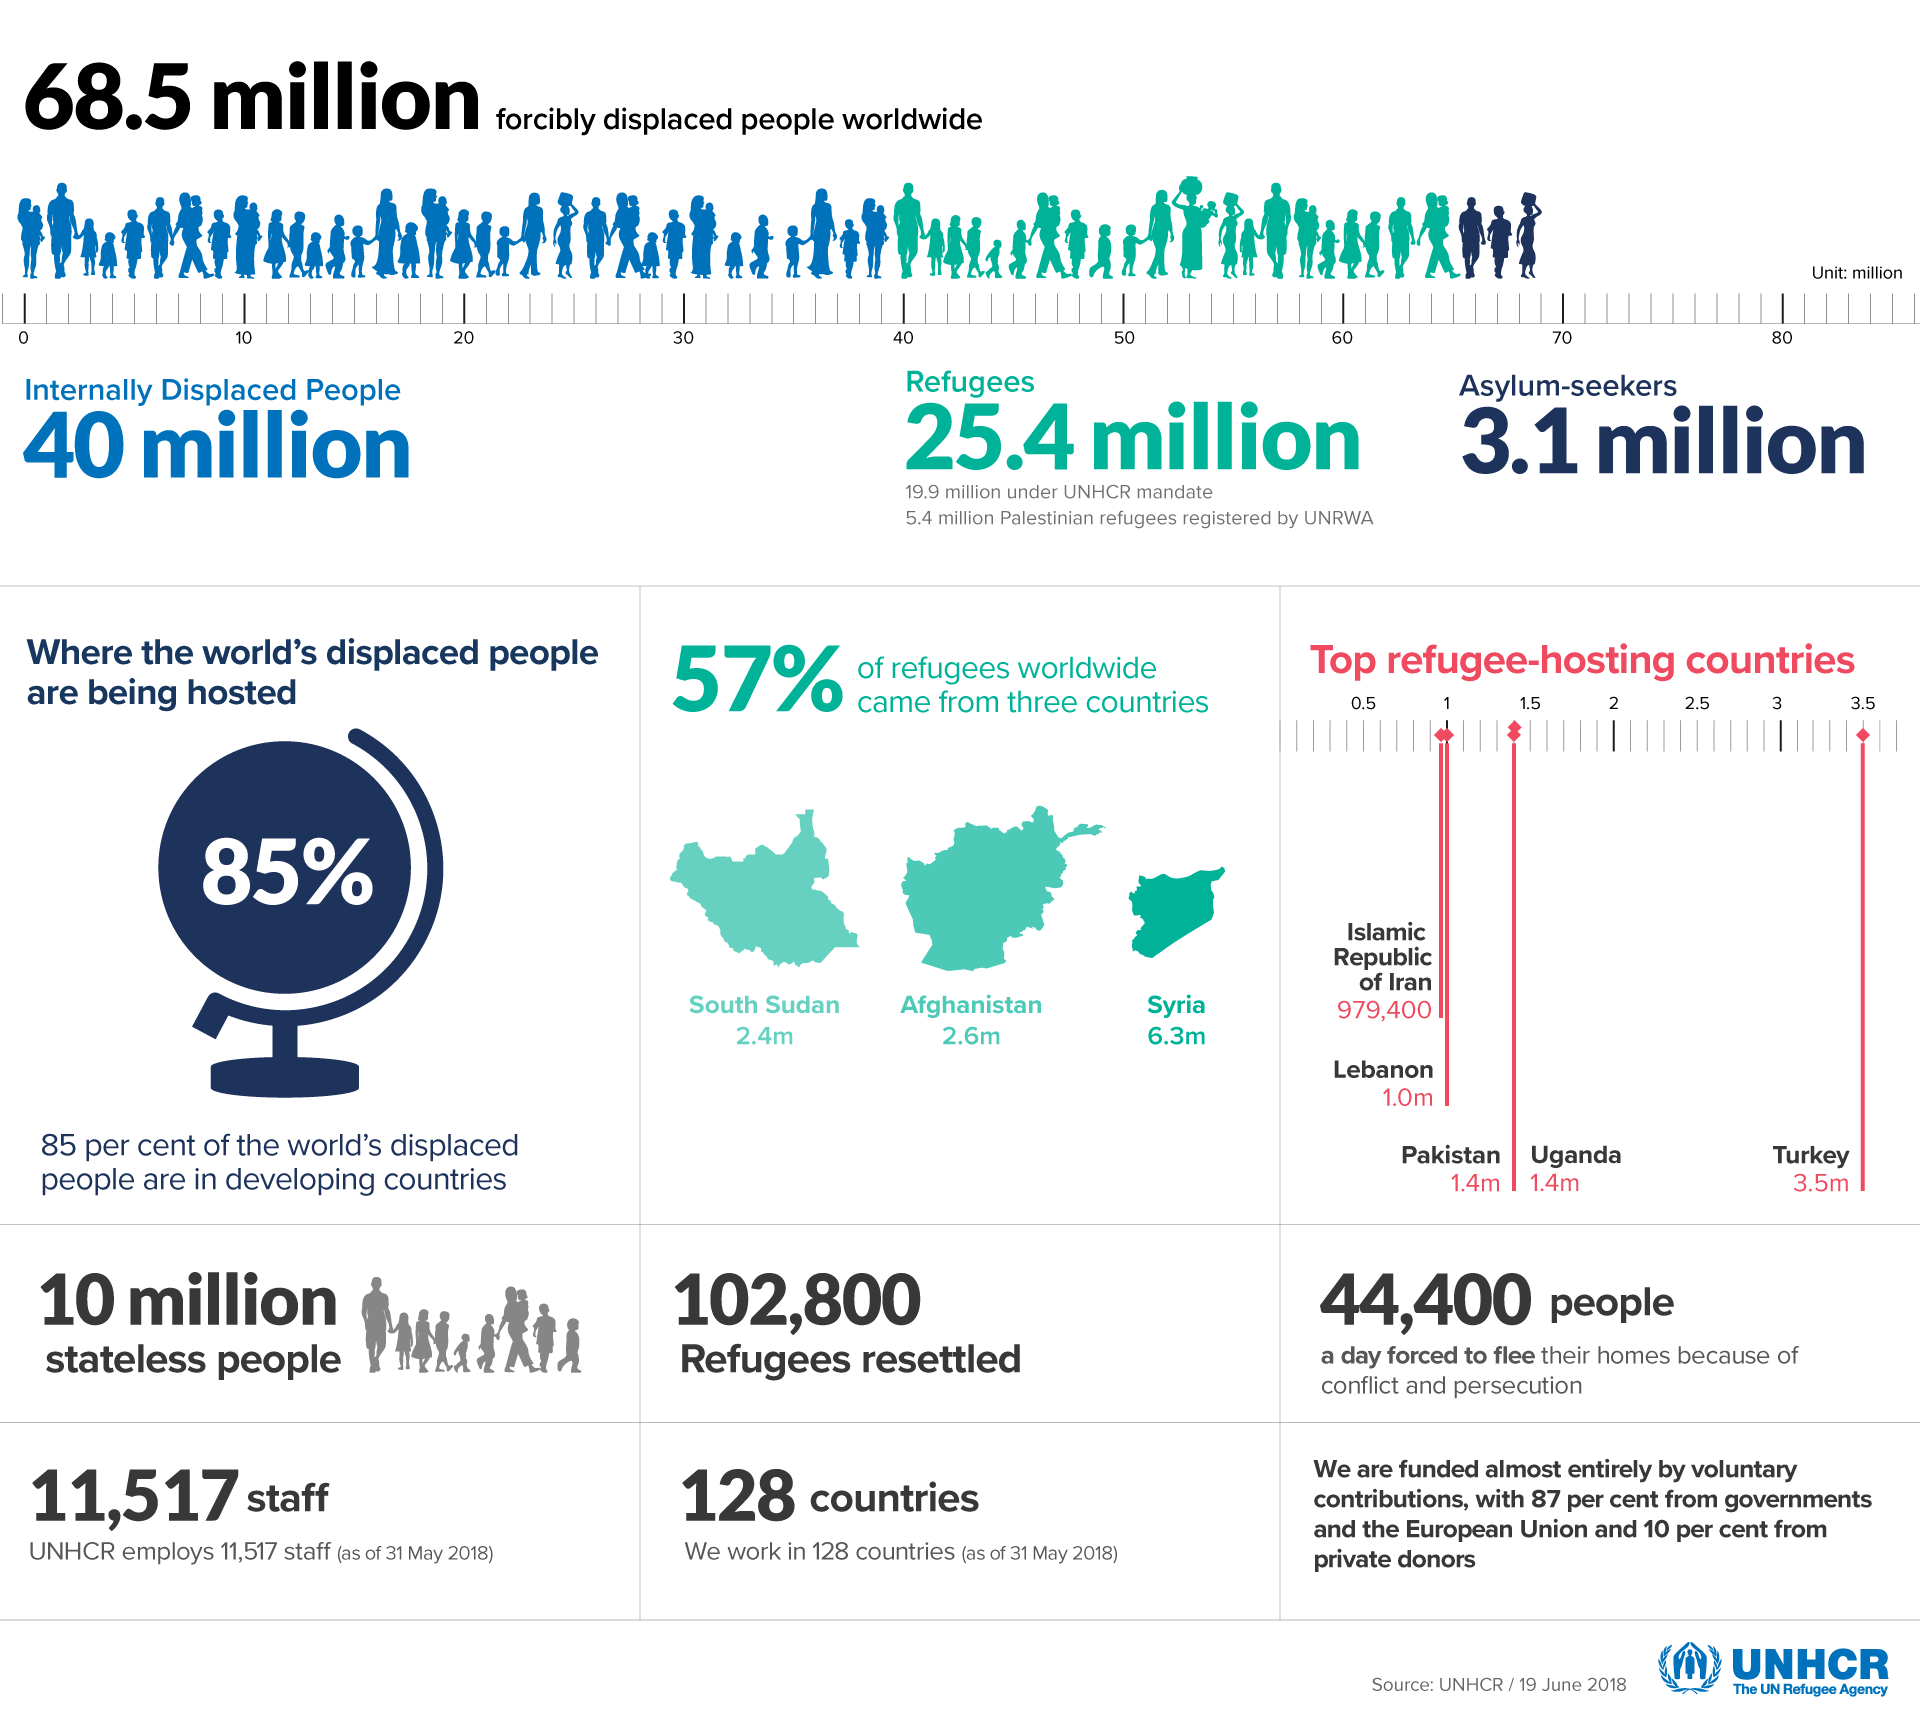 https://www.unhcr.org/images/infographics/(English)_FiguresAtAGlance_Infographic(08JUN2018)-V2.png